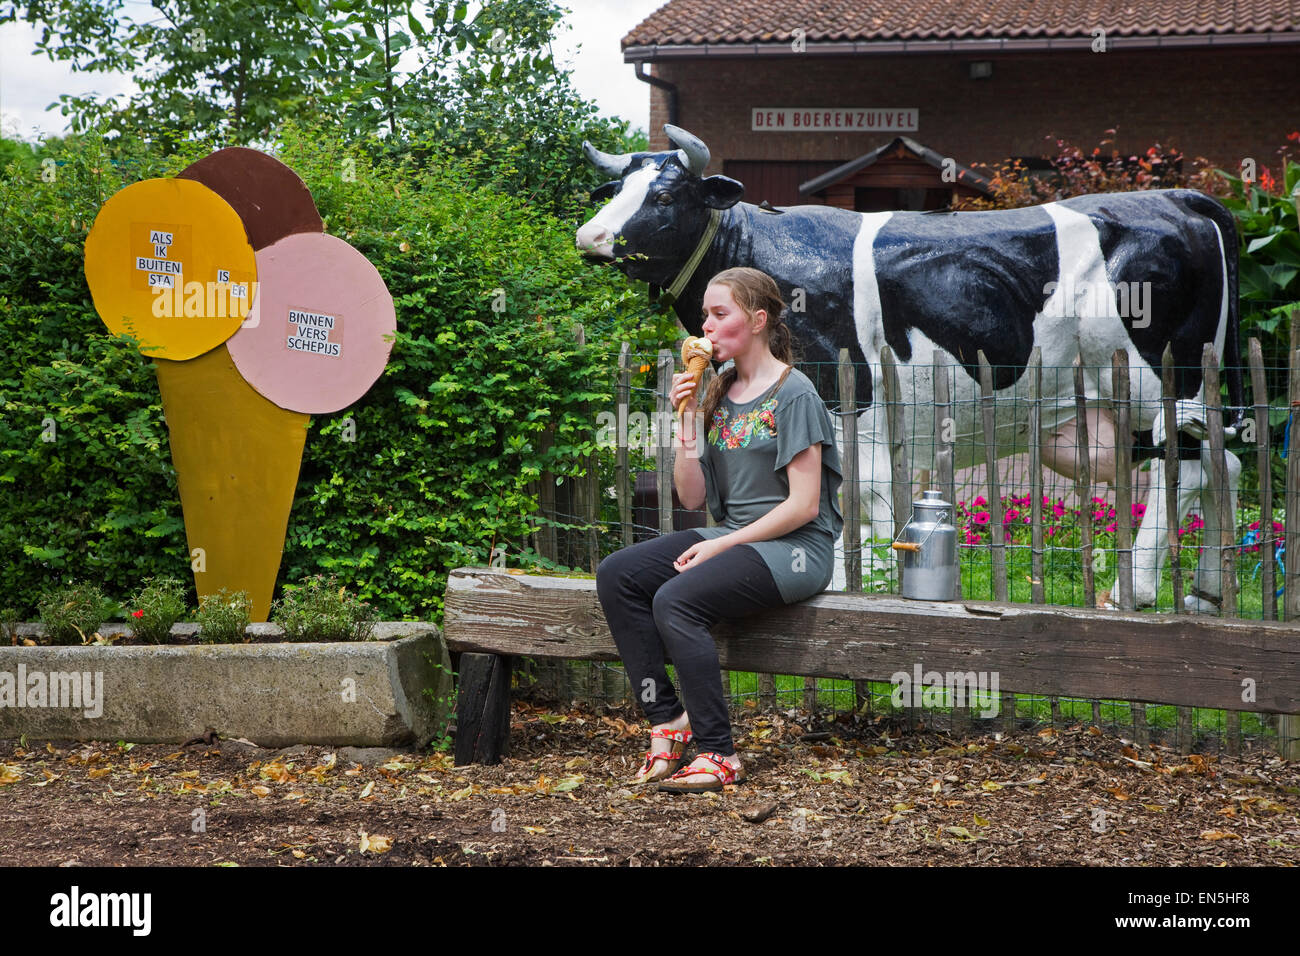 Girl eating dairy made ice cream in front of dairy farm - Stock Image